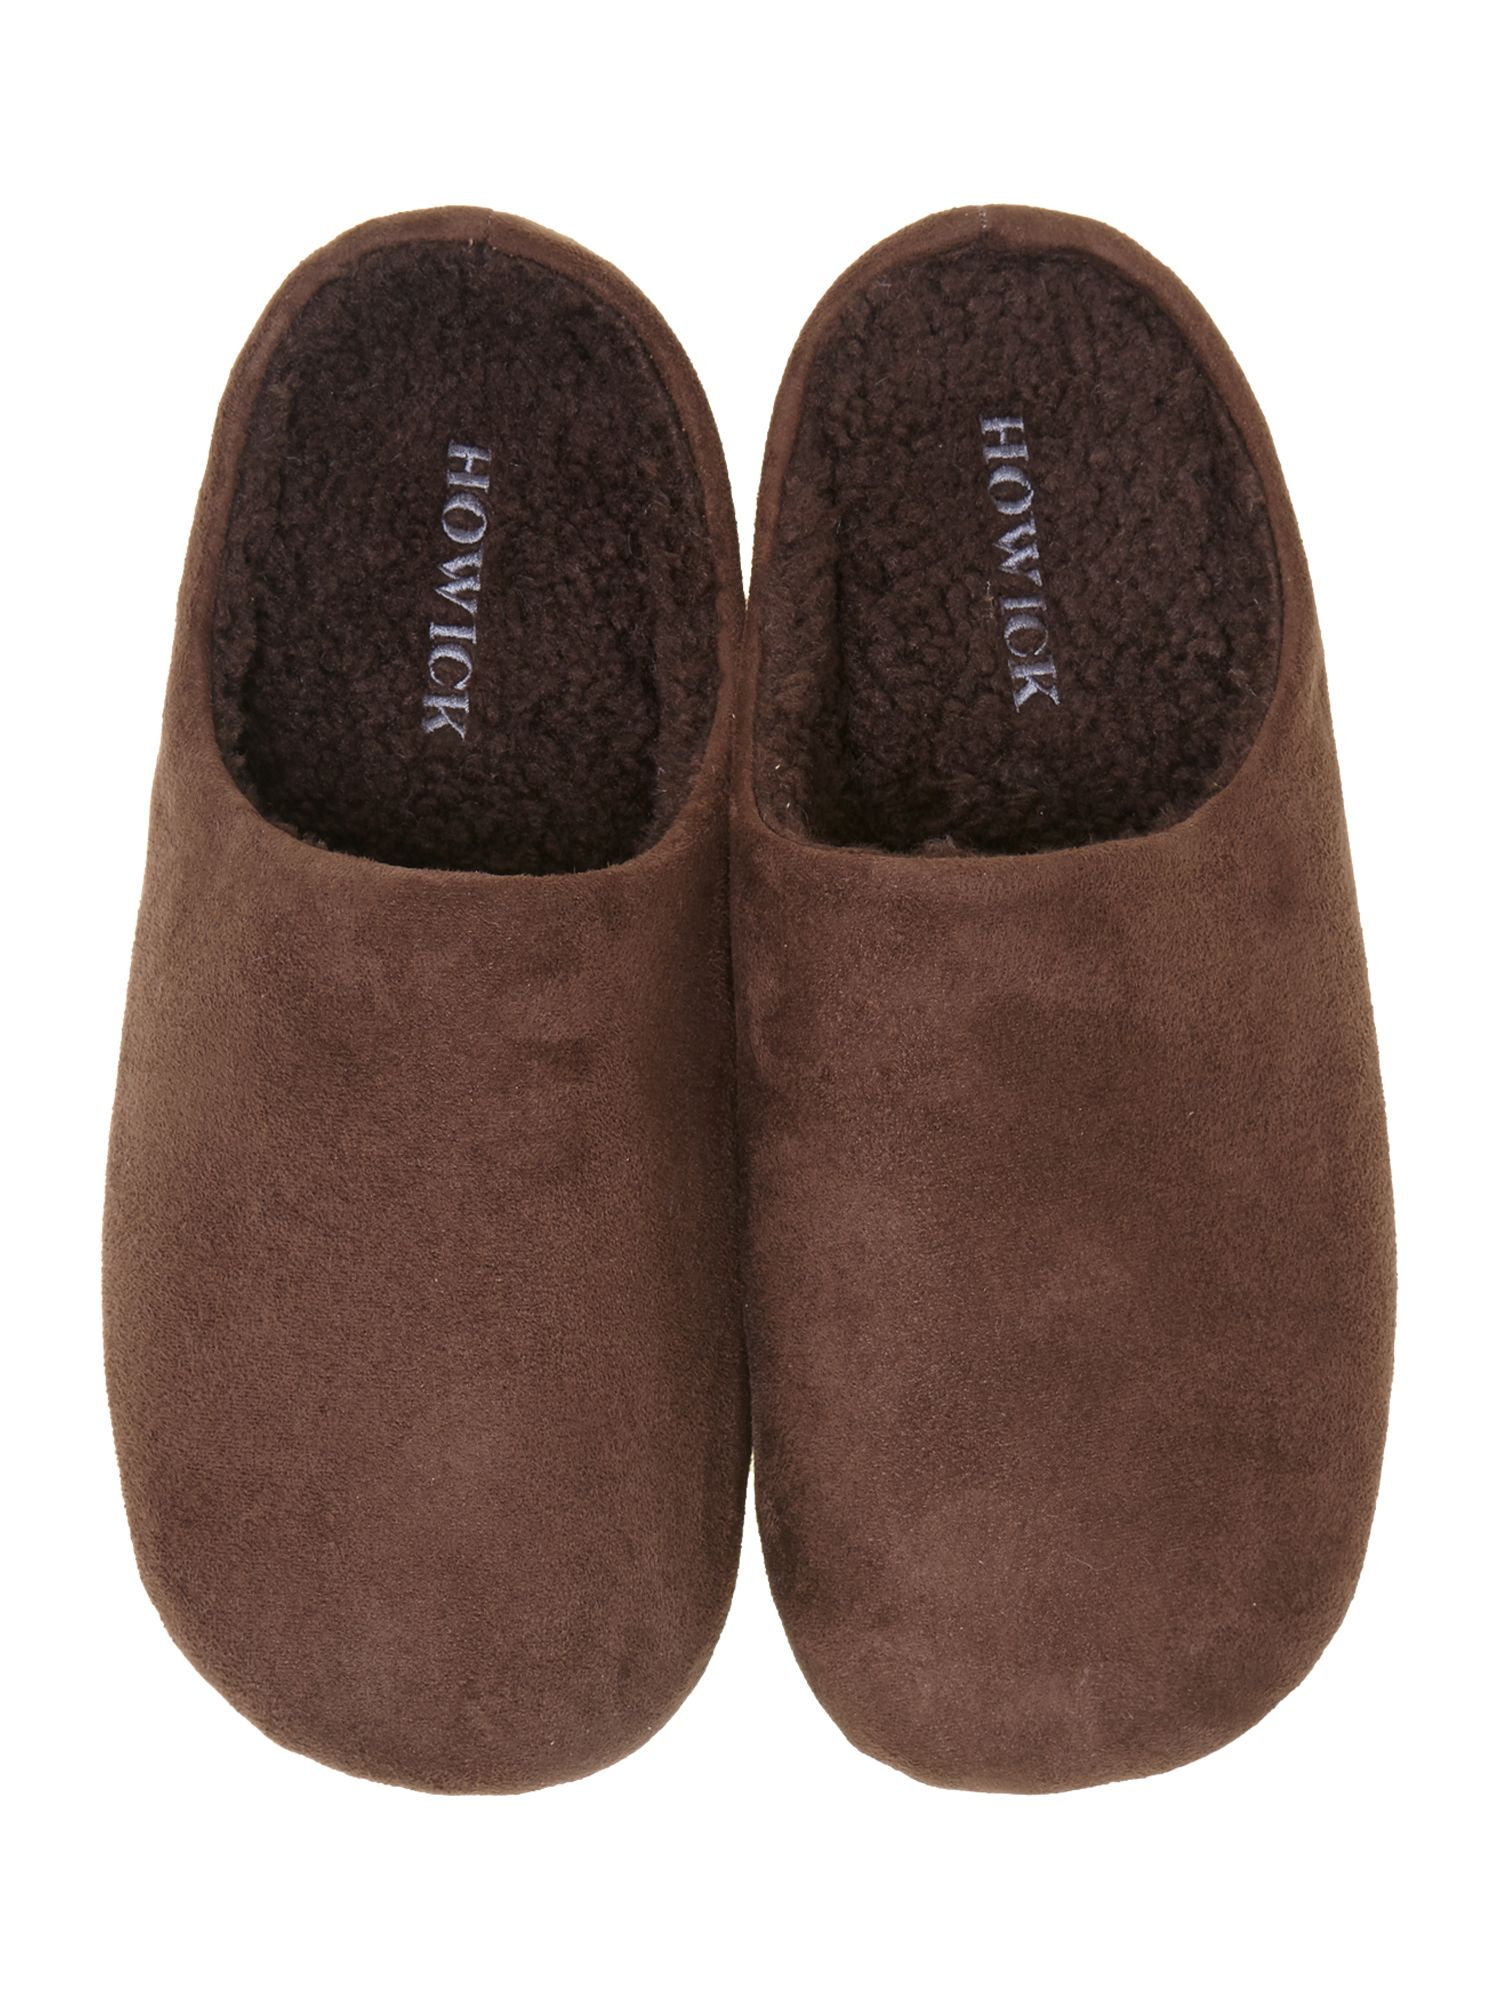 Microsuede open back slipper